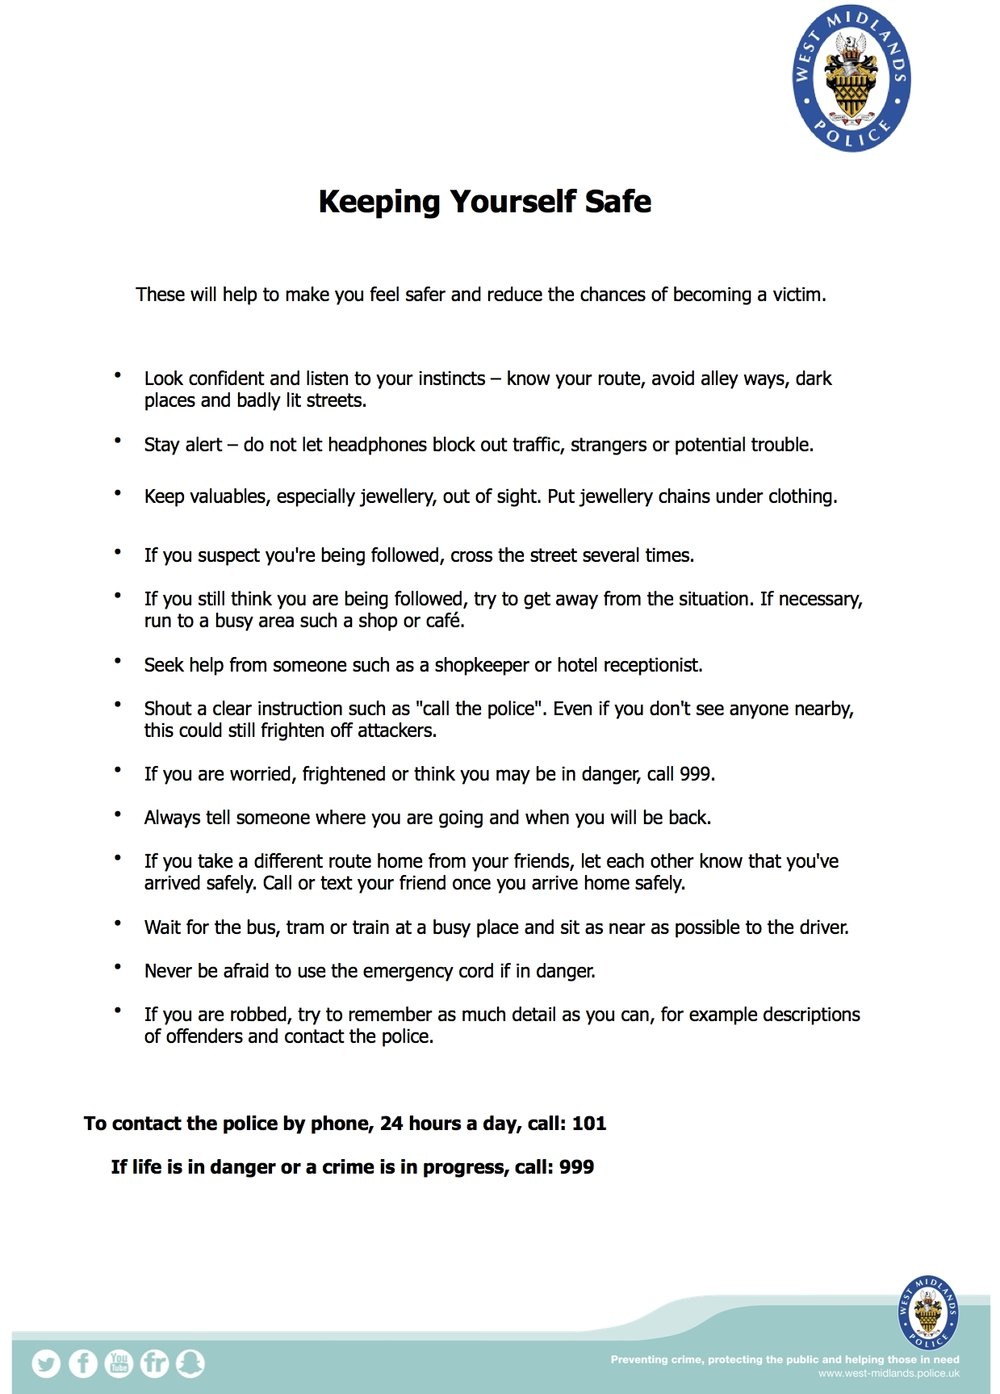 7. Keeping Yourself Safe, Students, October 2017 3.jpg